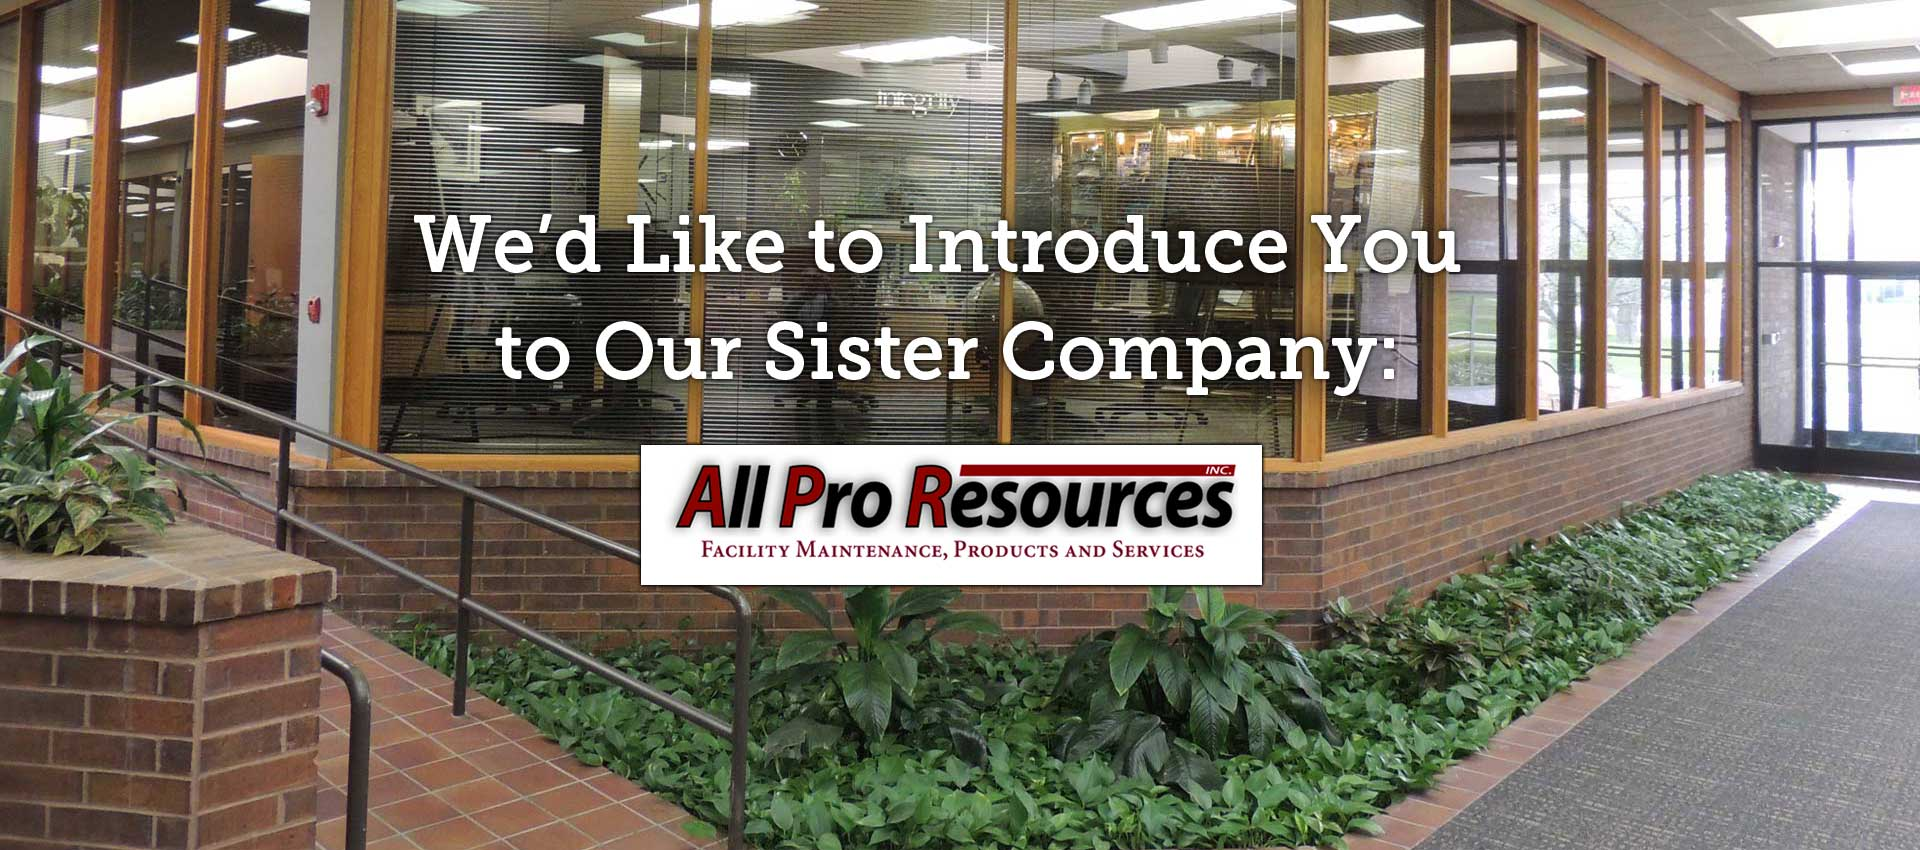 We'd like to introduce you to our sister company: All Pro Resources - Facility Maintenance, Products and Services